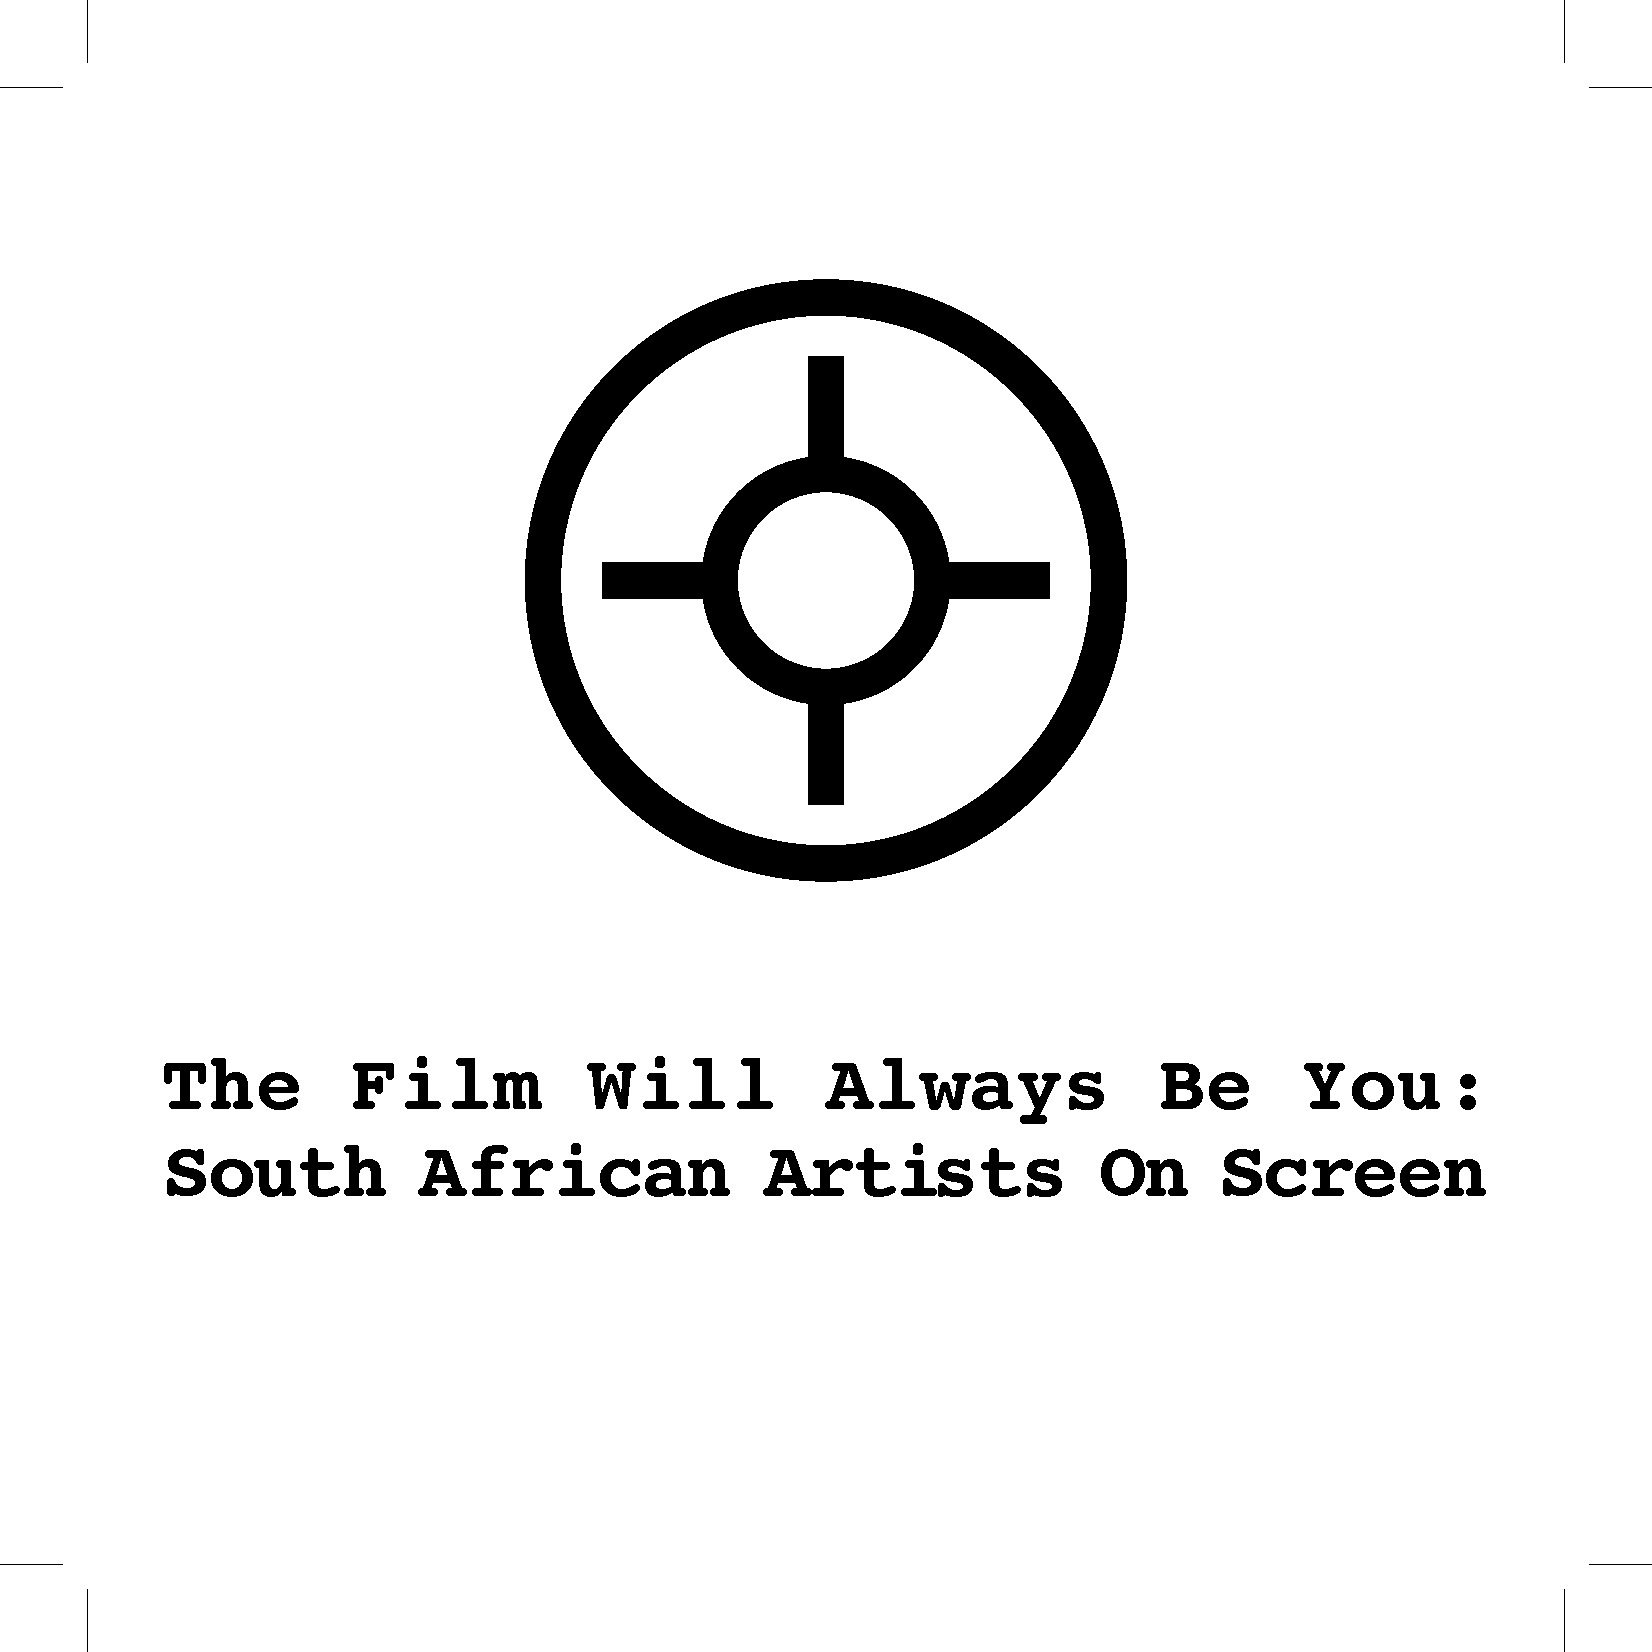 MAP Southafrica - The Film Will Always Be You